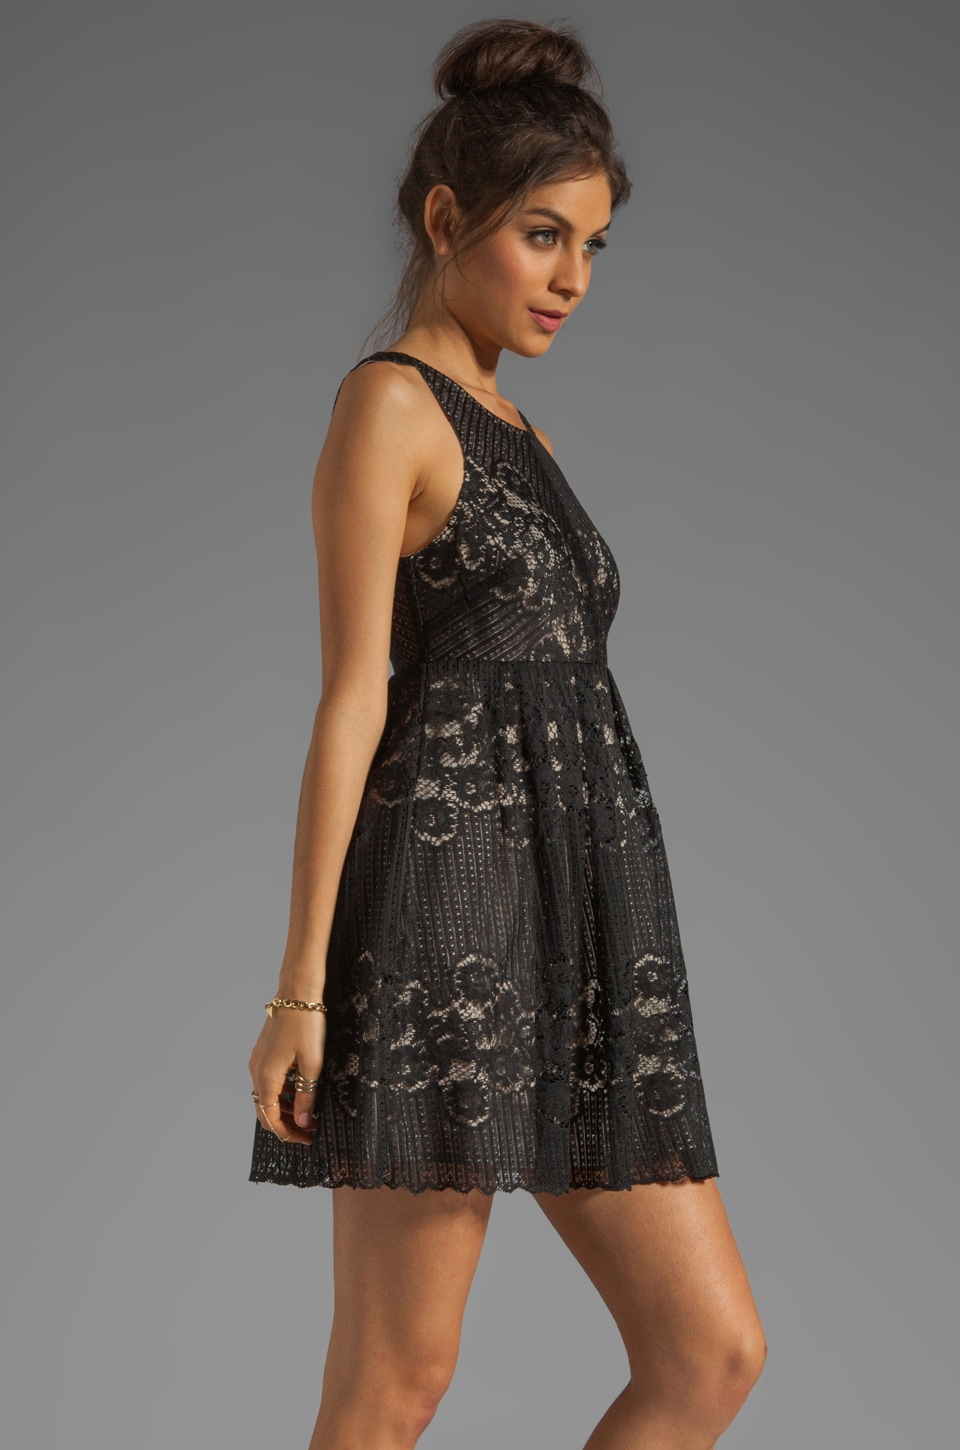 Free People Rocco Dress in Black